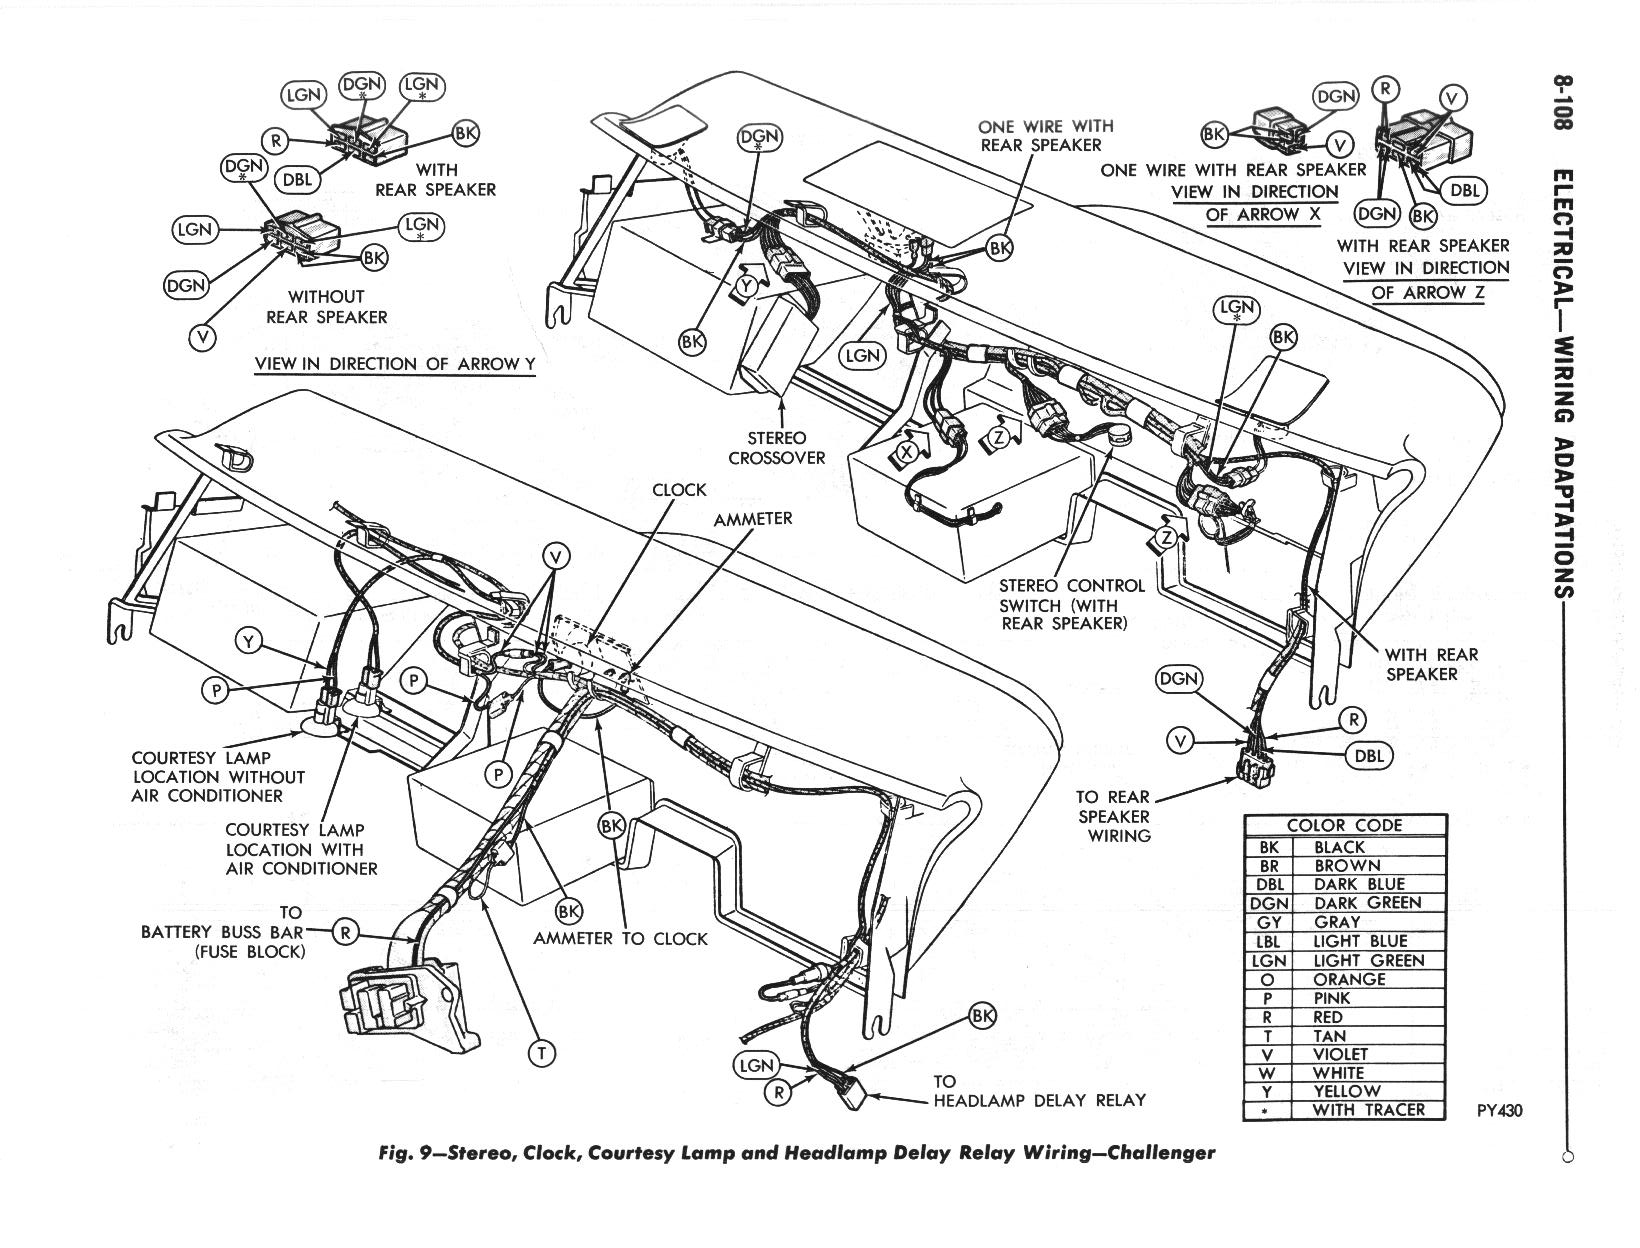 1970 Challenger Wiring Harness Diagram List Of Schematic Circuit Start Run Capacitor Samsung Rs2555bb Printable Data U2022 Rh 144 202 108 125